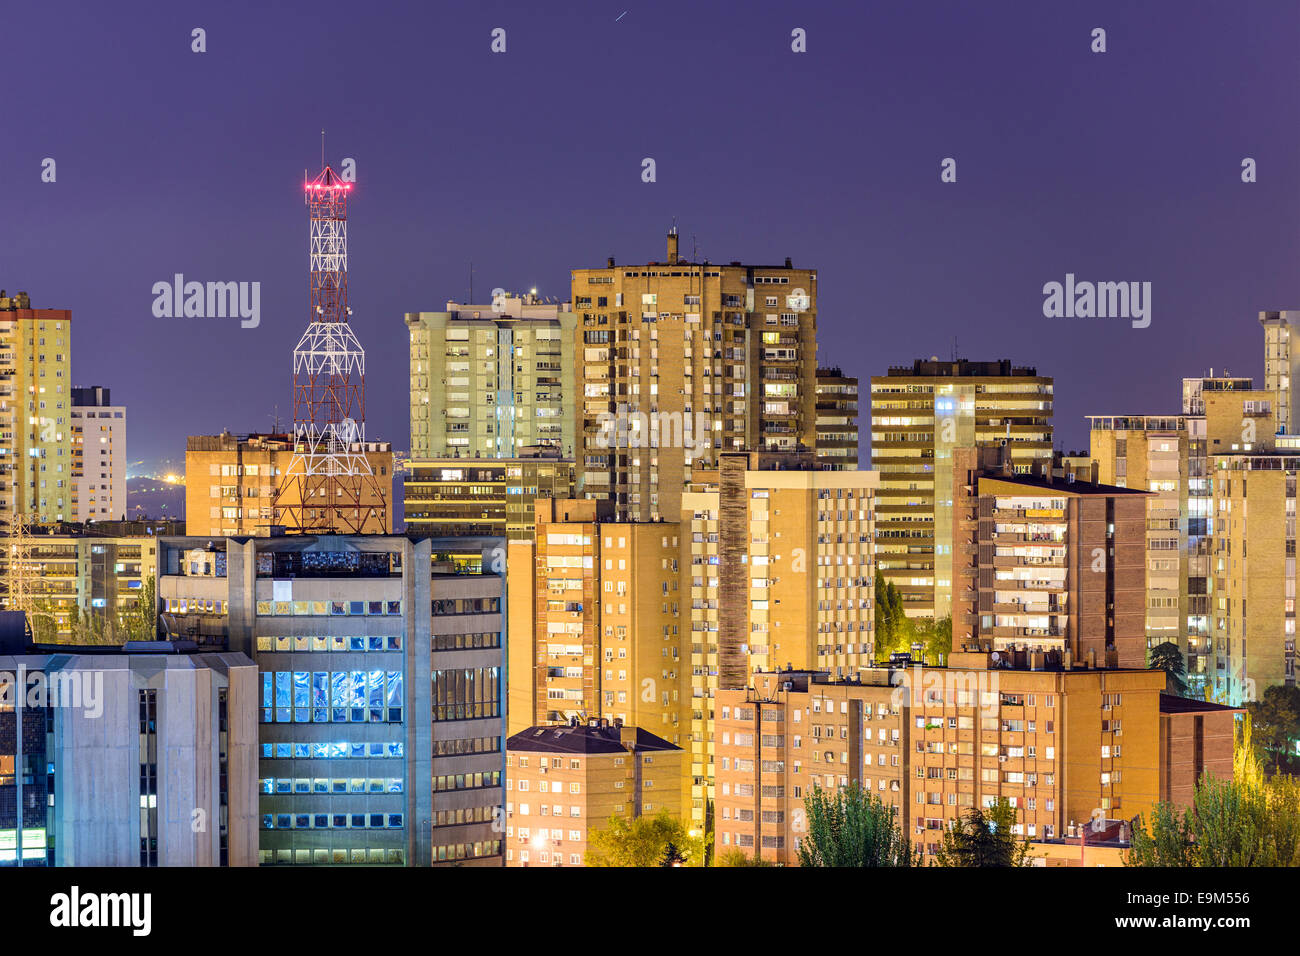 Madrid, Spain cityscape of residential and office high rises. - Stock Image